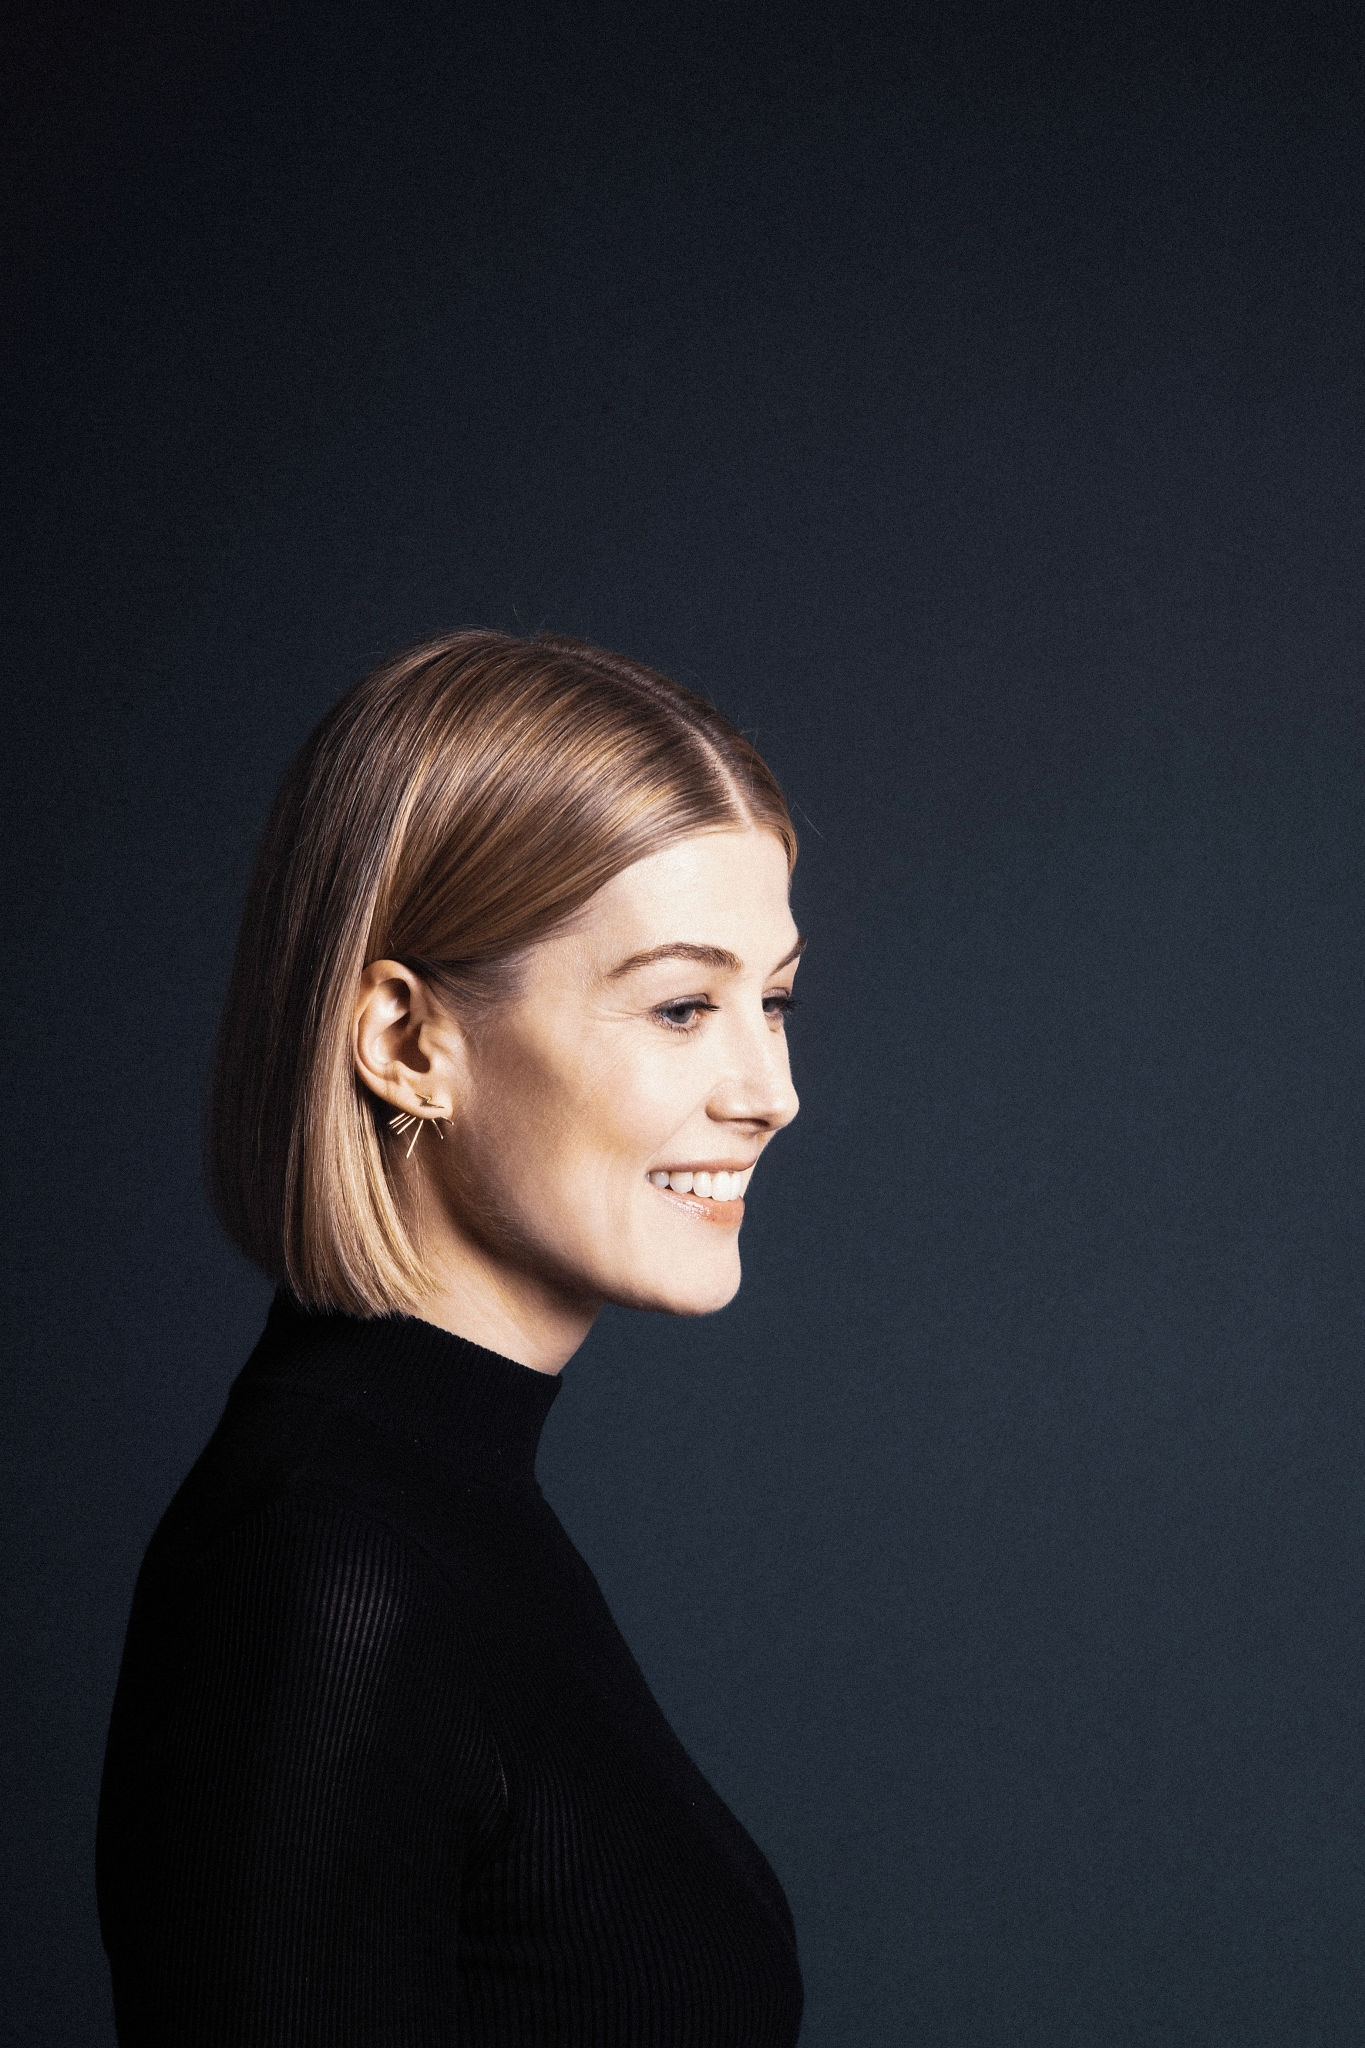 Rosamund Pike Wallpapers High Resolution and Quality Download